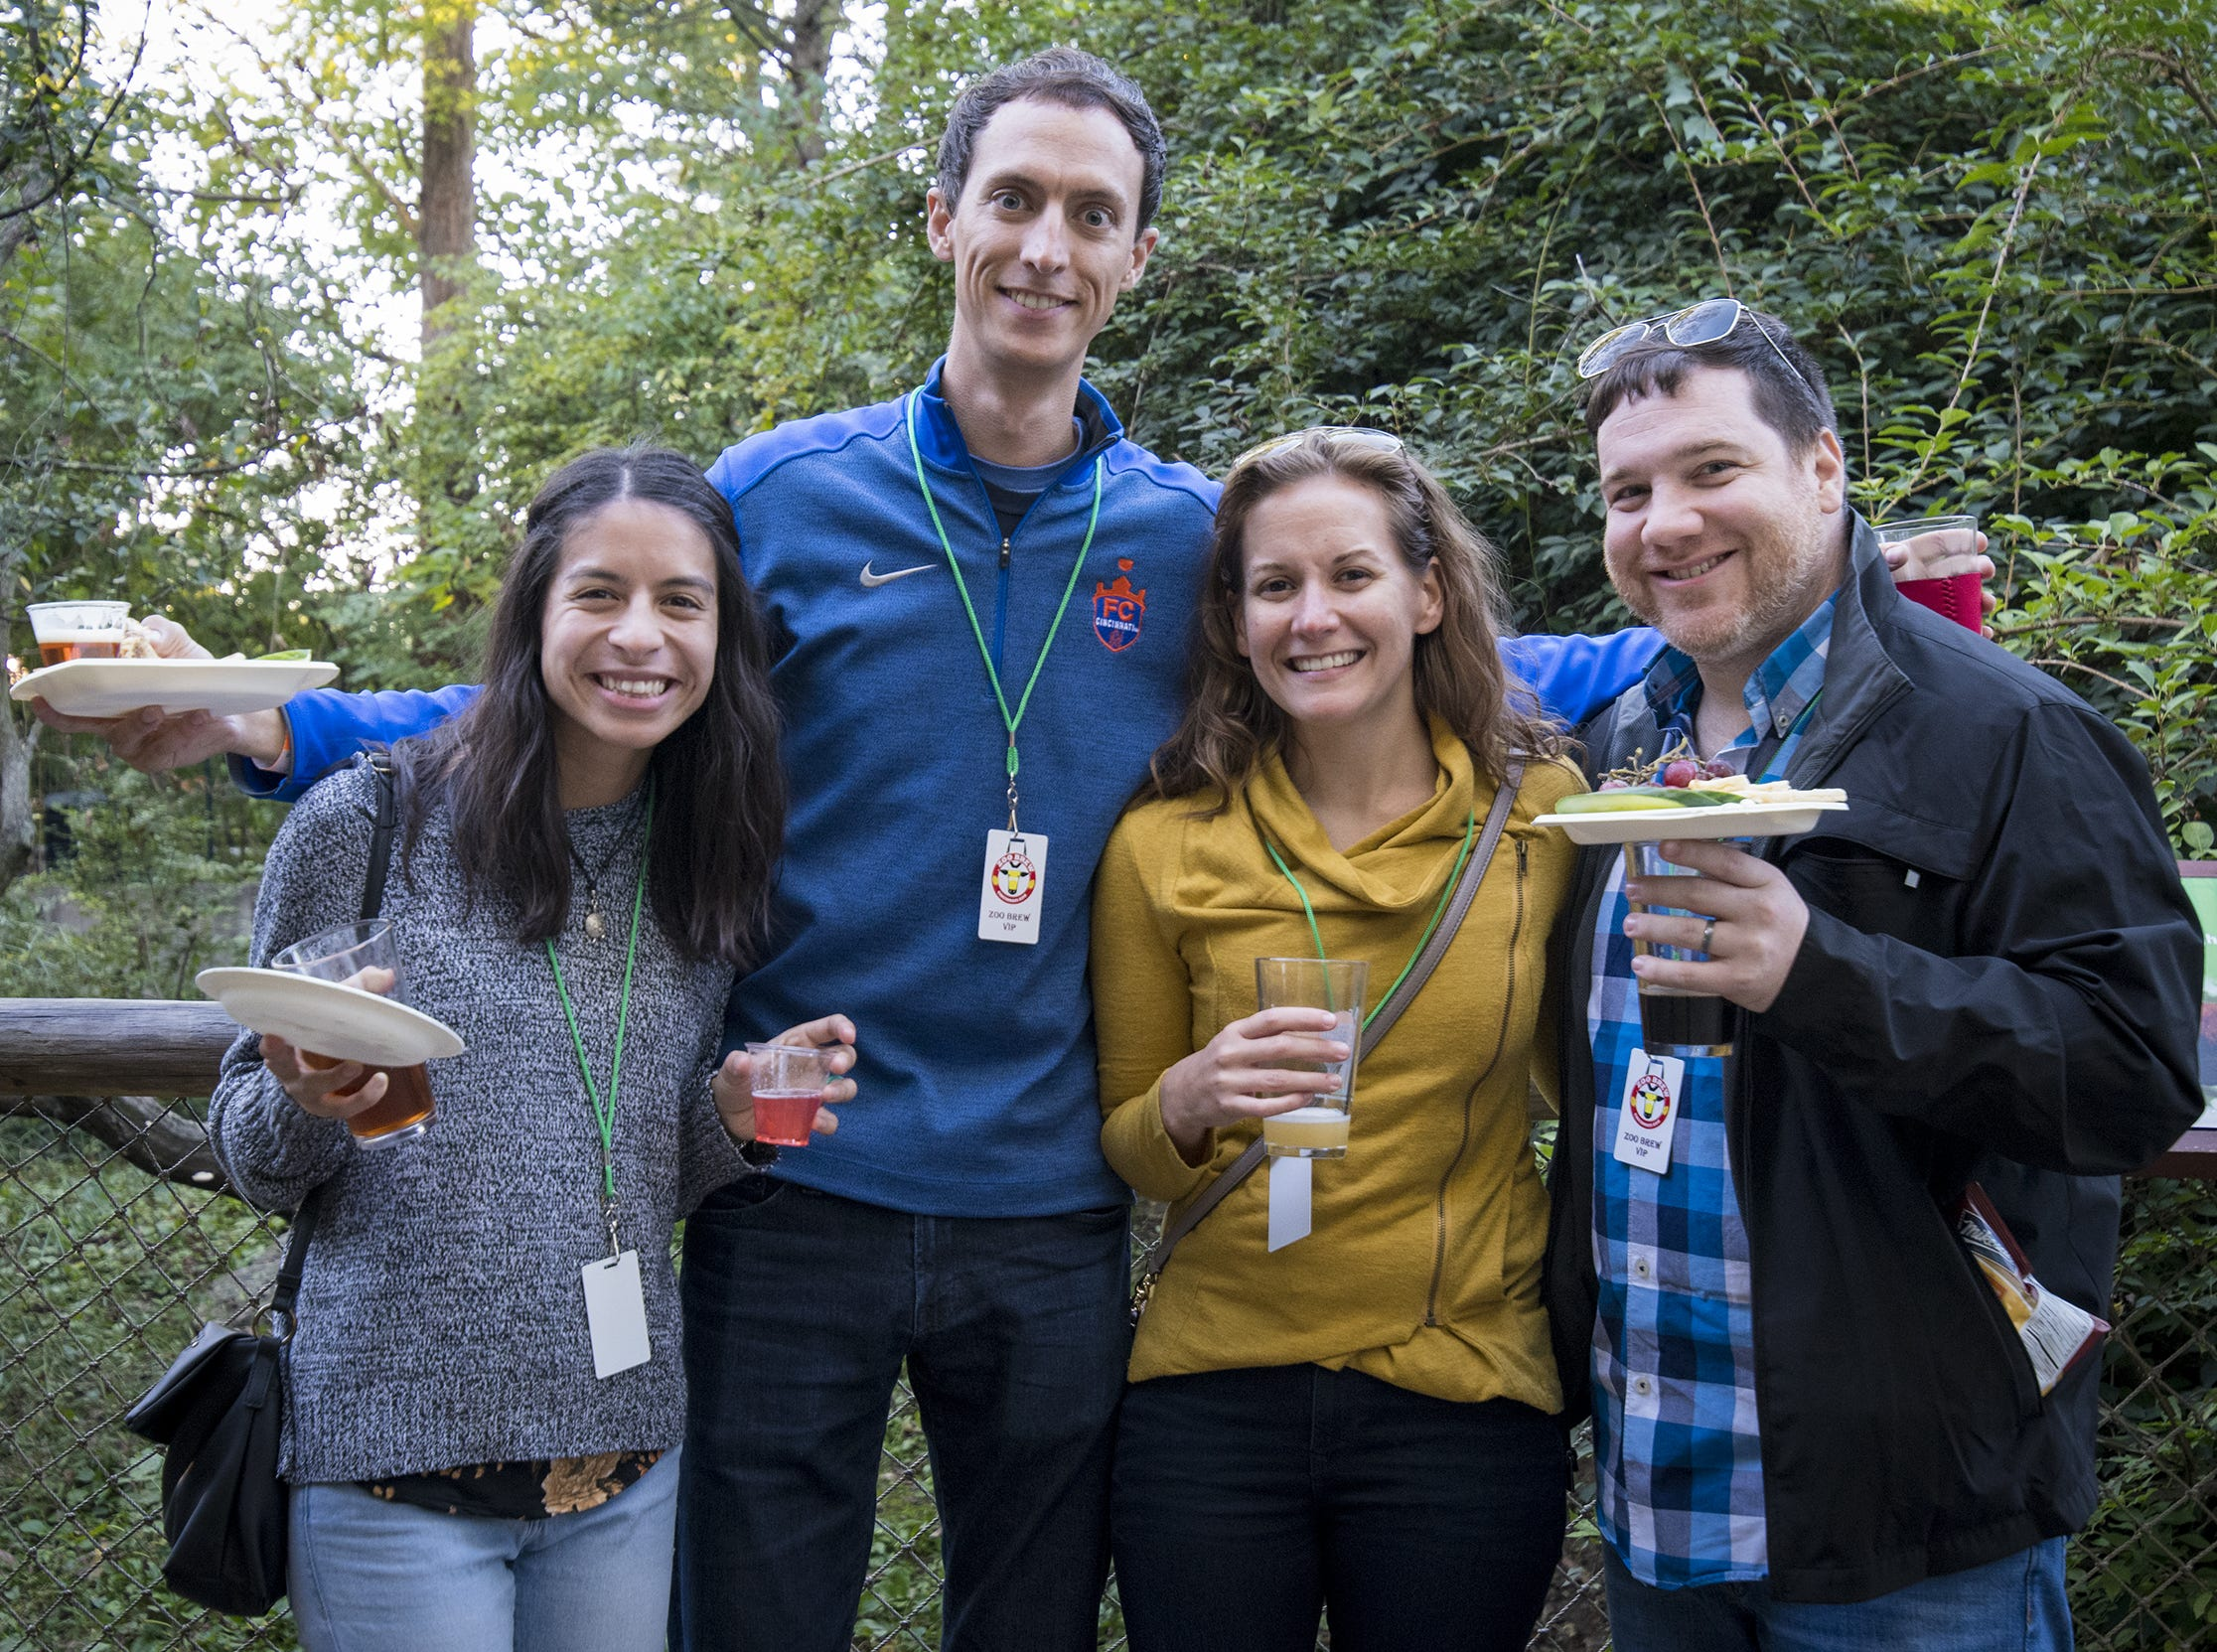 Nuntakaa Ternai, Joel Jones, Ashley Sutter and Michael Brewster attend Zoo Brew.